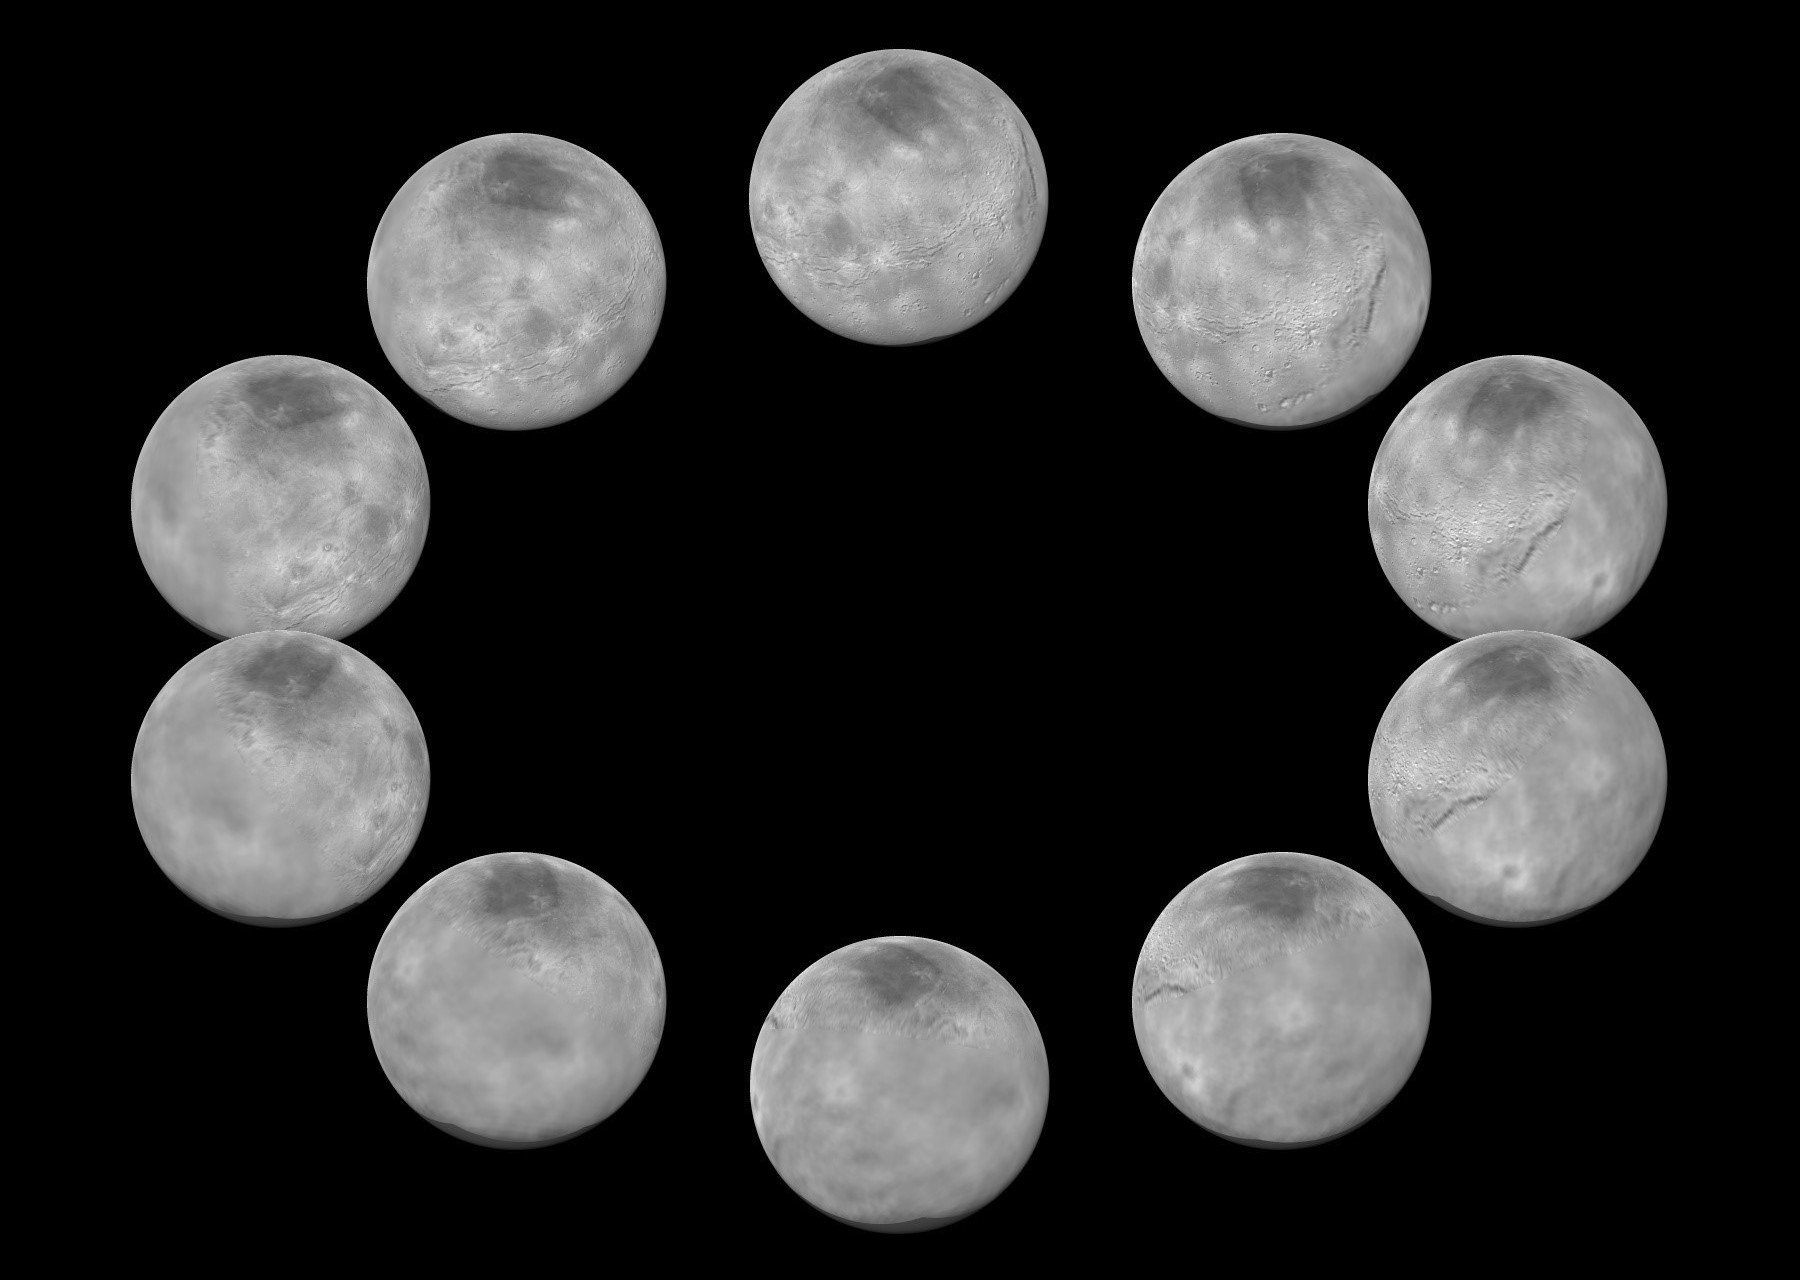 On approach to the Pluto system in July 2015, the cameras on NASA's New Horizons spacecraft captured images of the largest of Pluto's five moons, Charon, rotating over the course of a full day. The best currently available images of each side of Charon taken during approach have been combined to create this view of a full rotation of the moon. Click the image for a full-size version. Image credits: NASA/JHUAPL/SwRI.